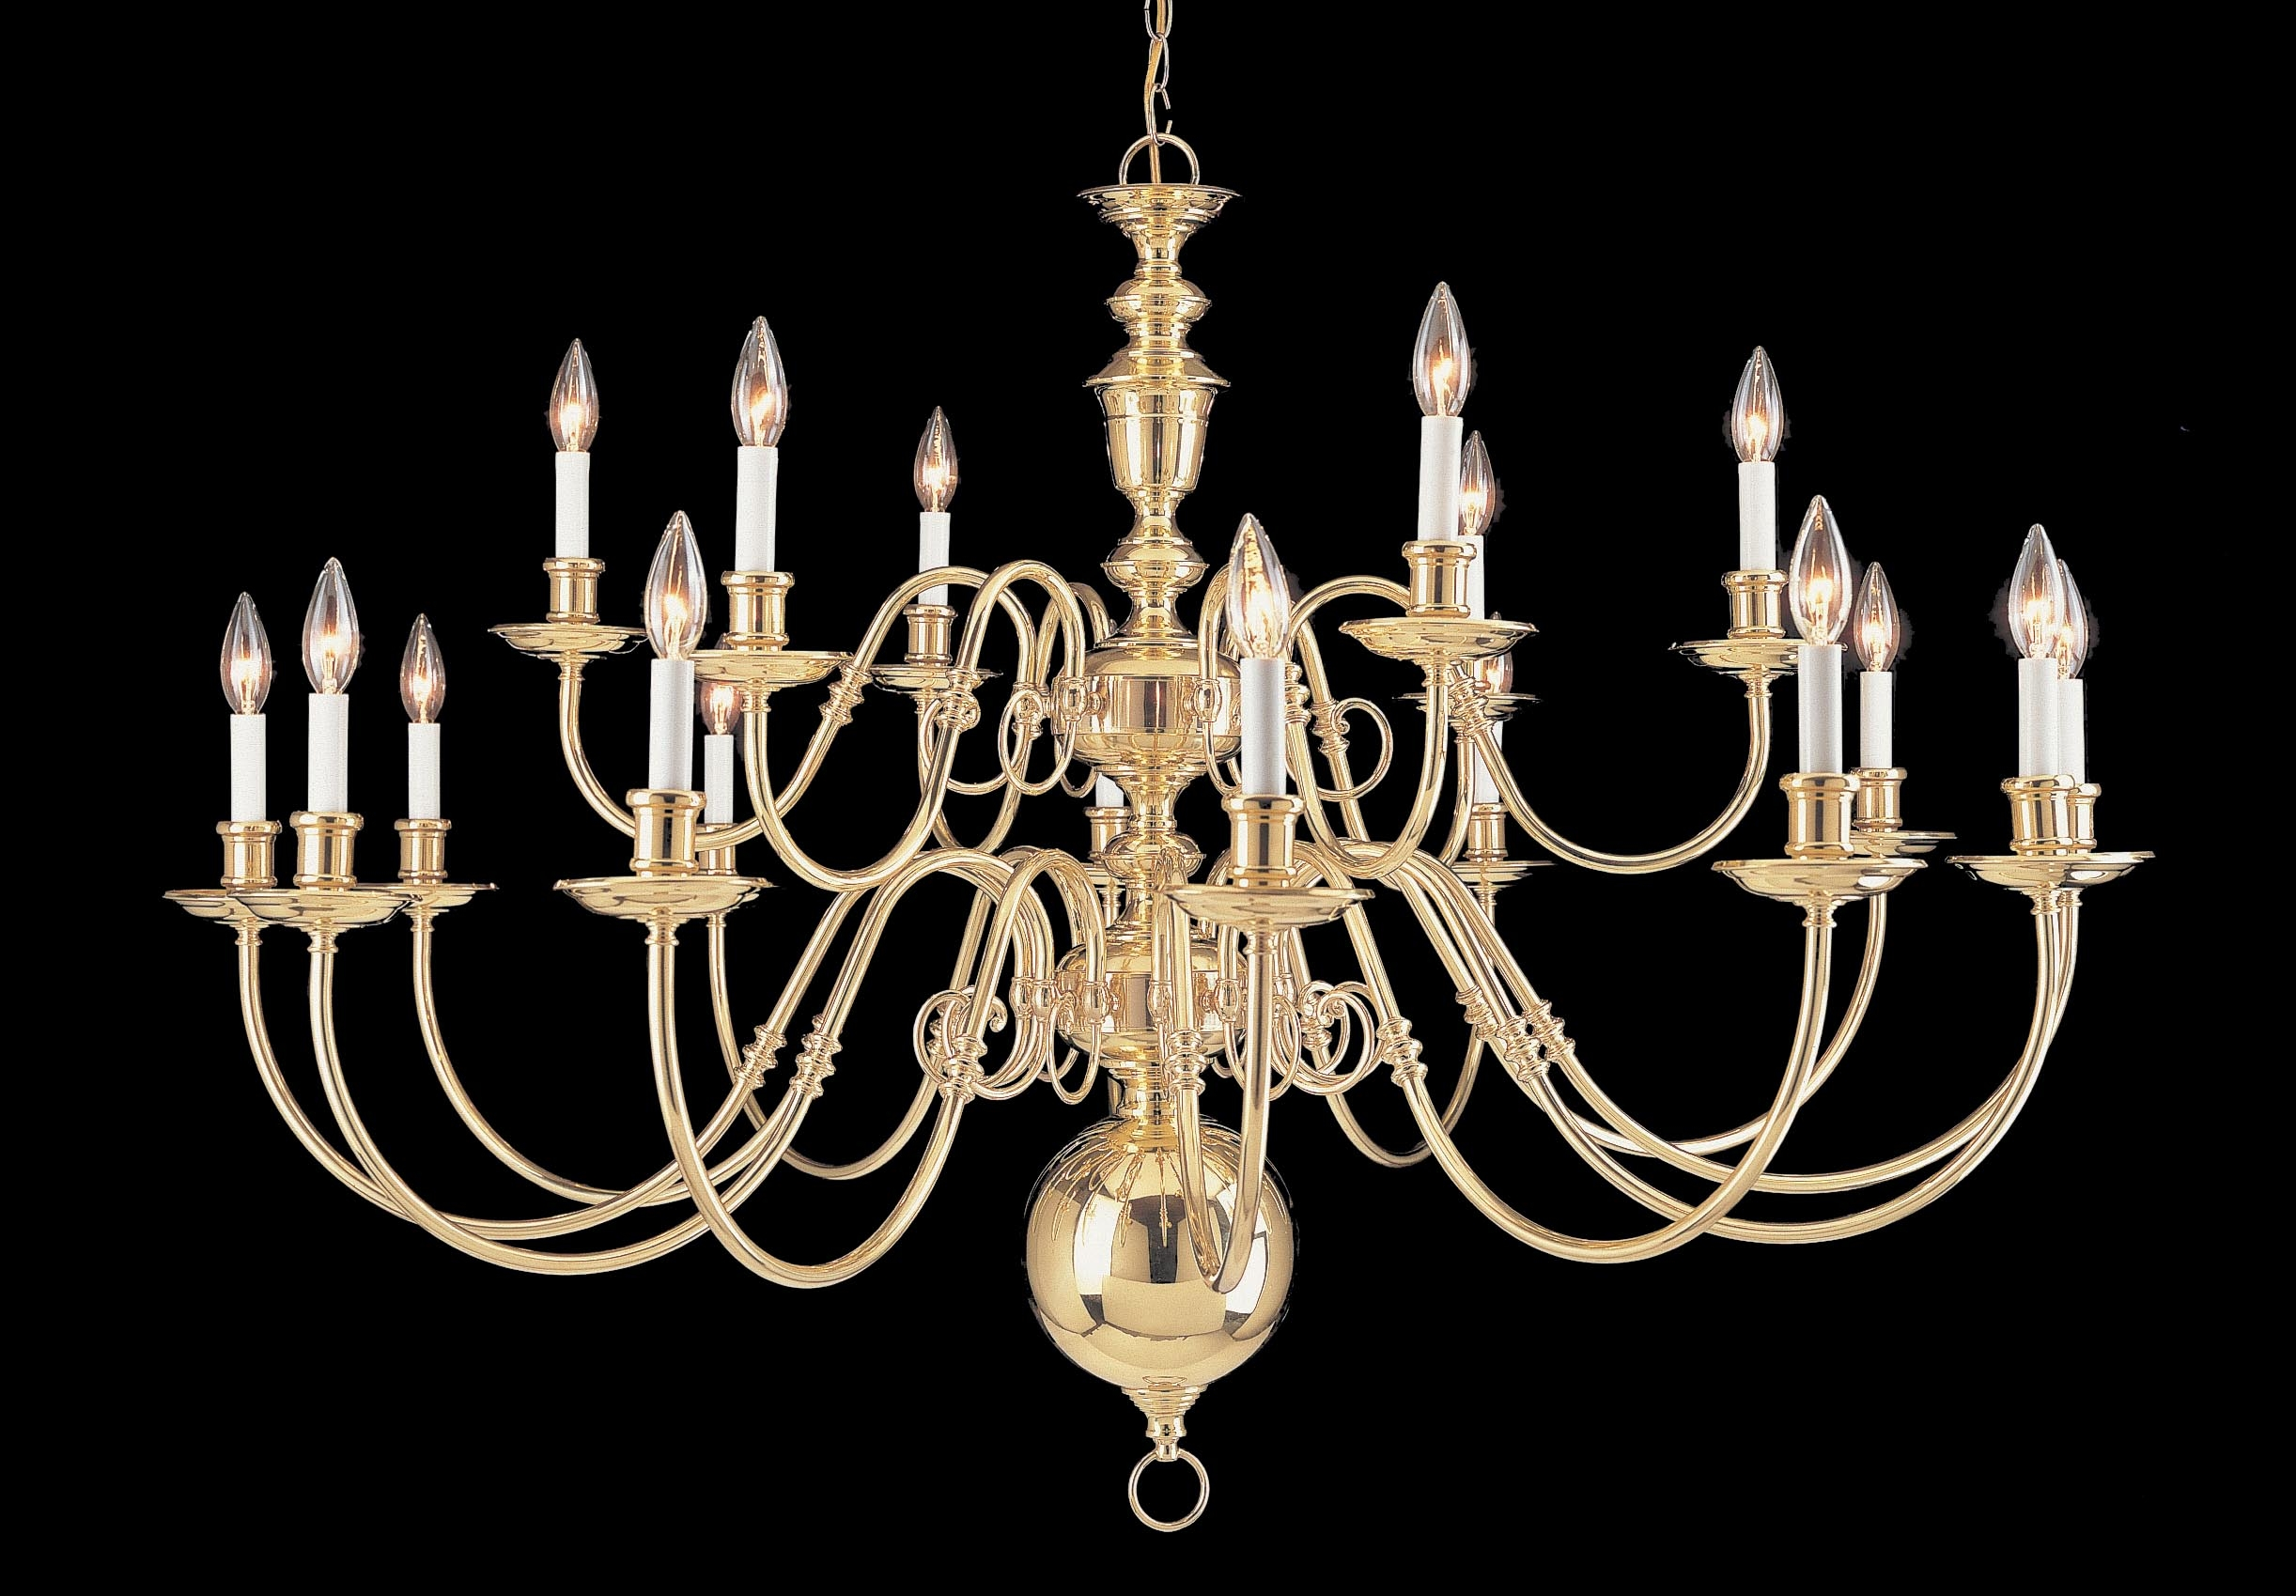 Largelighting Brassbronze Chandeliers With Large Bronze Chandelier (View 15 of 15)